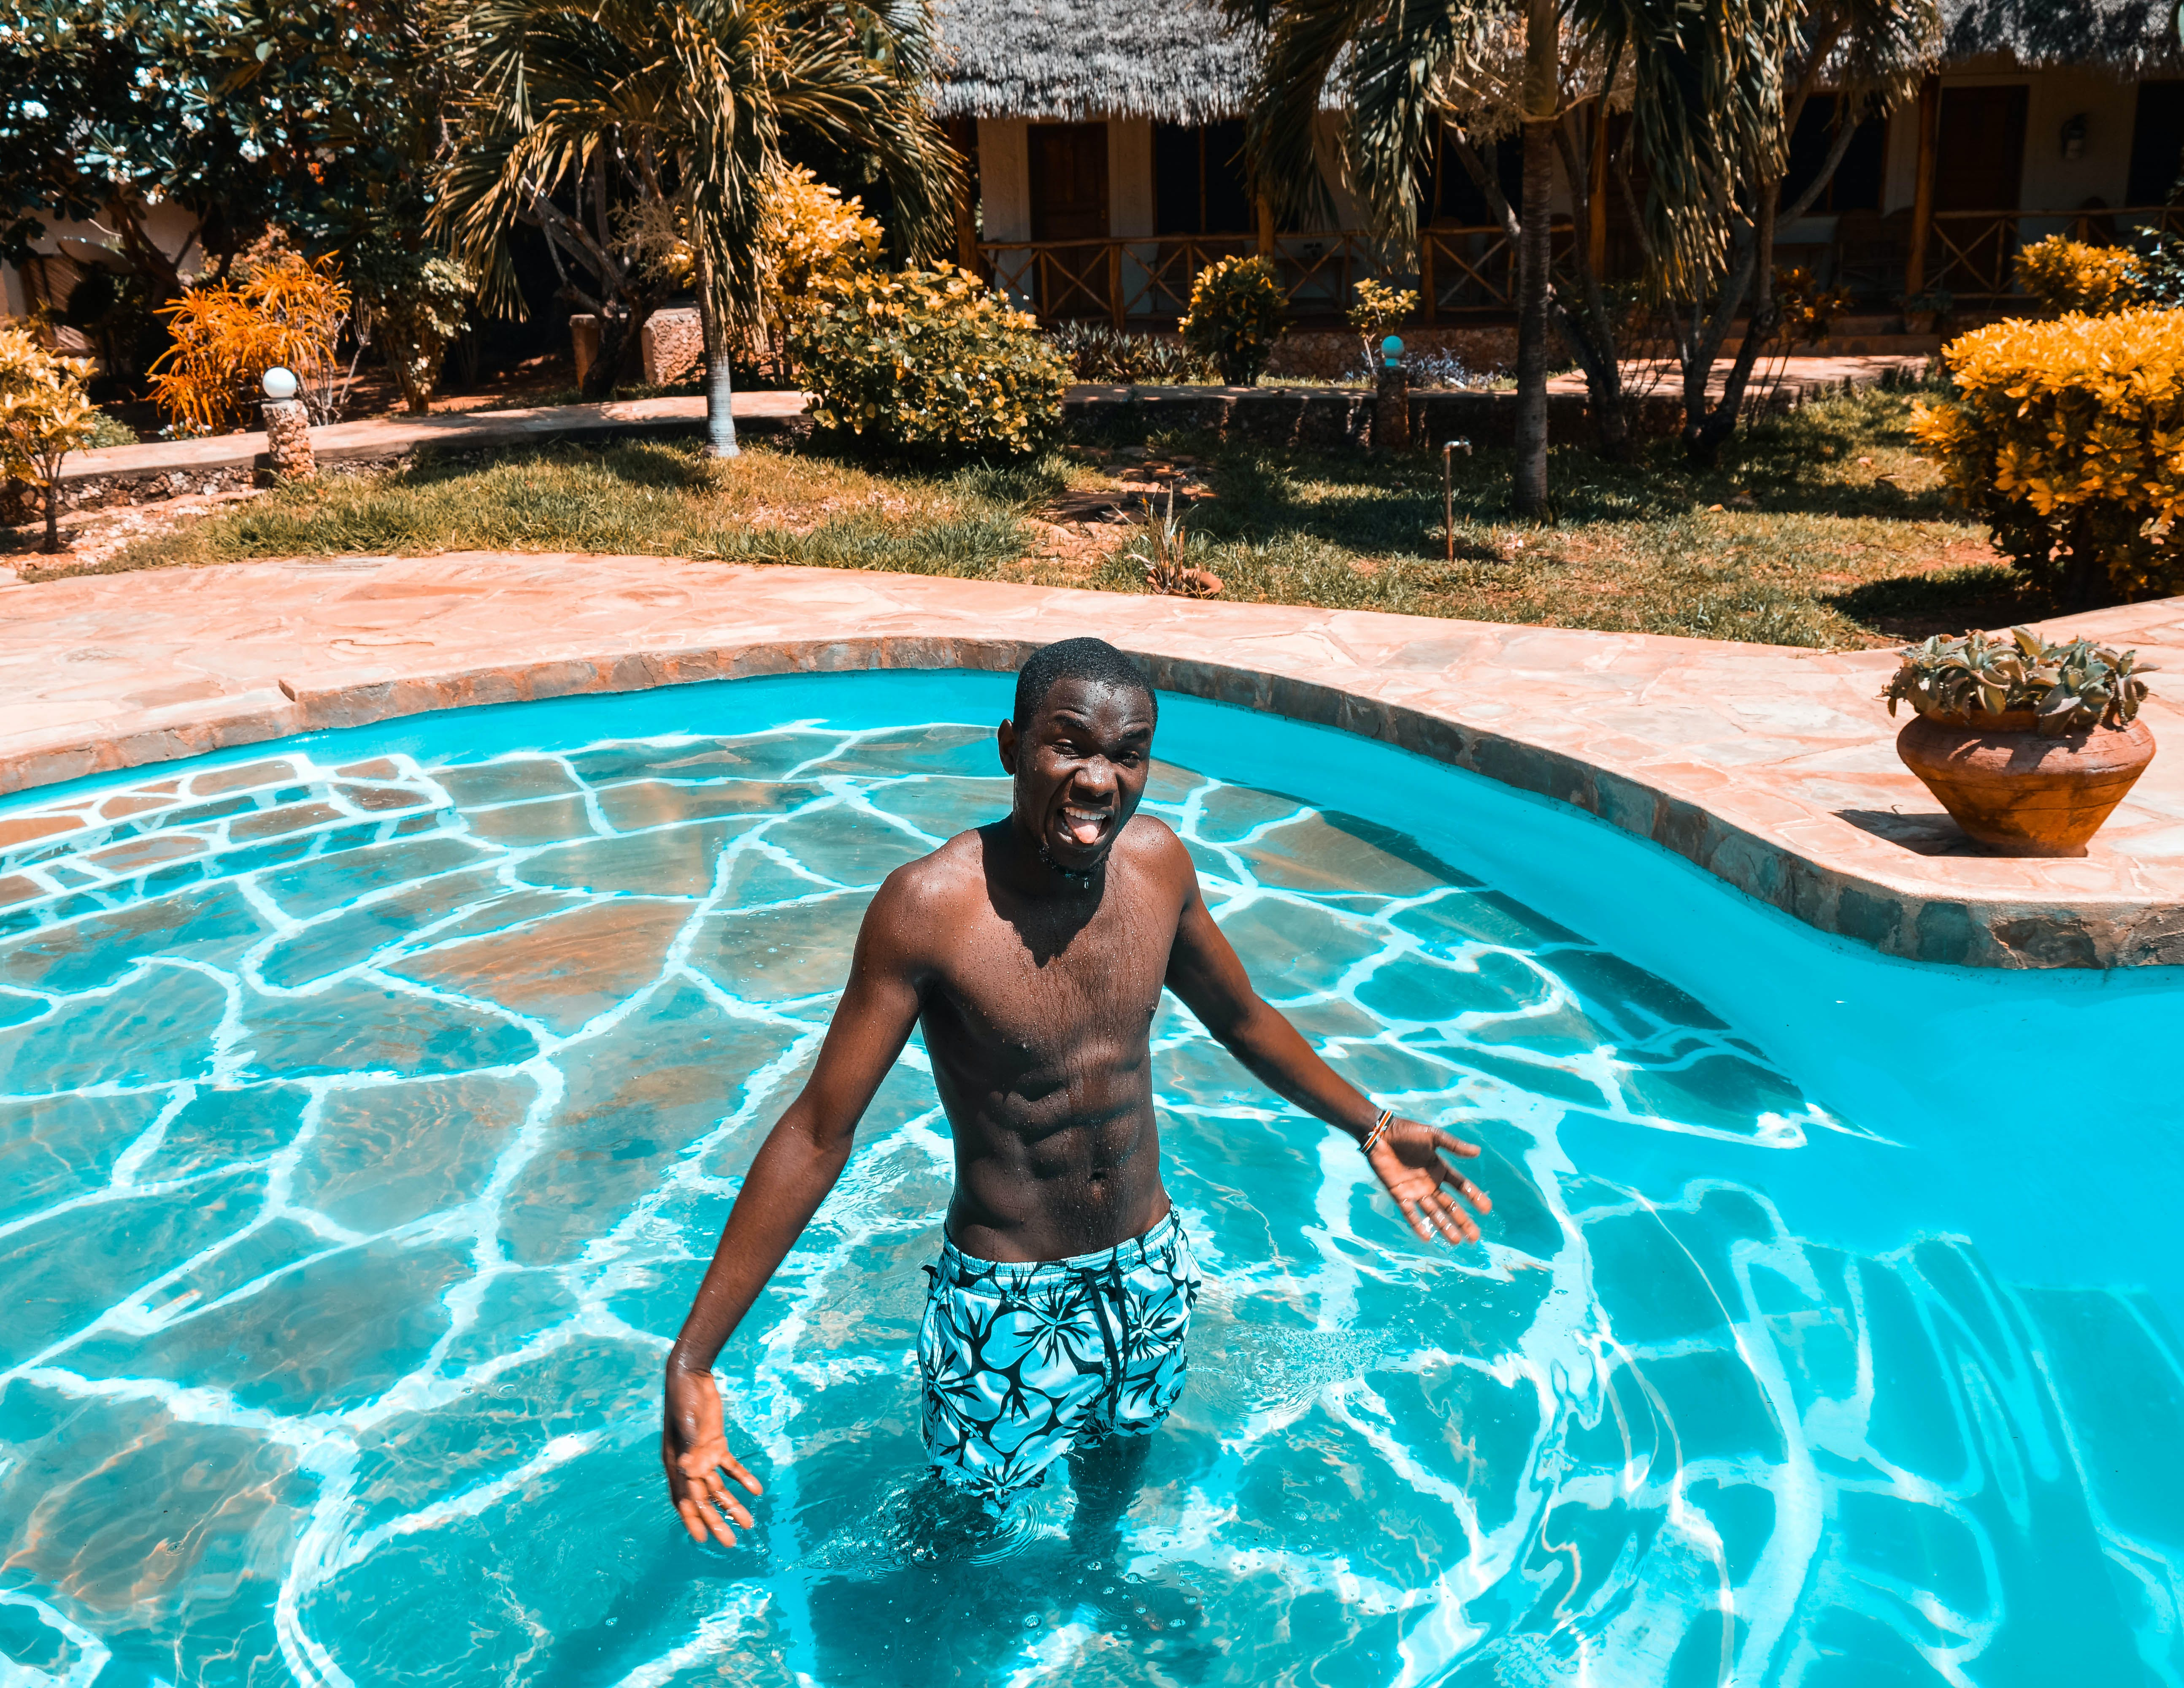 Man In Blue Shorts Standing In Pool